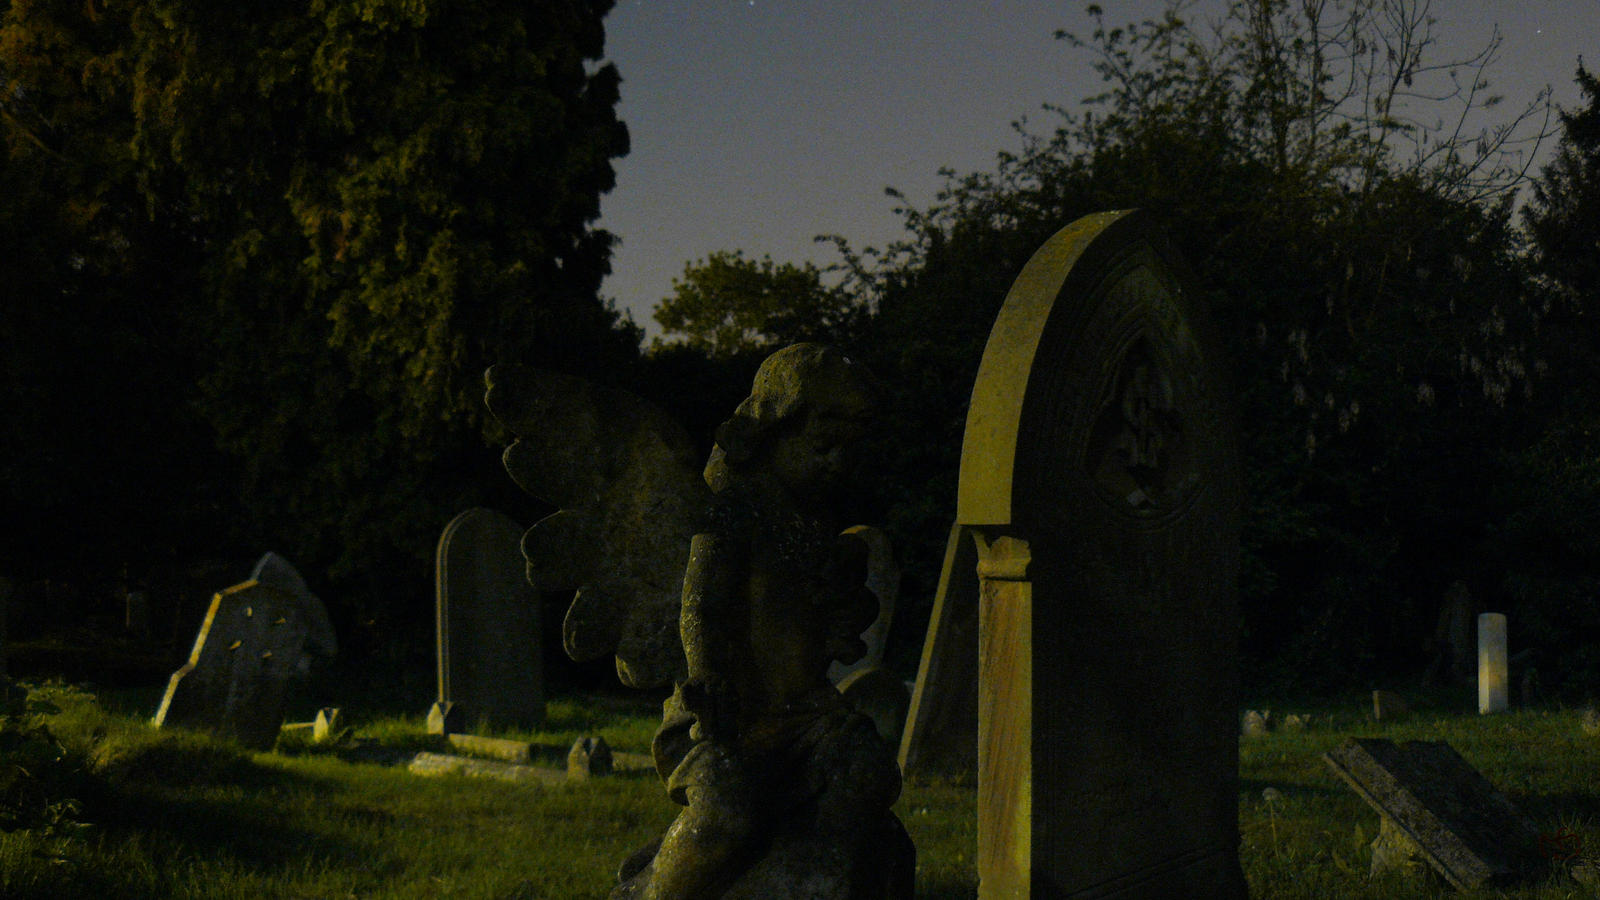 Night at cemetery by grotgier on DeviantArt